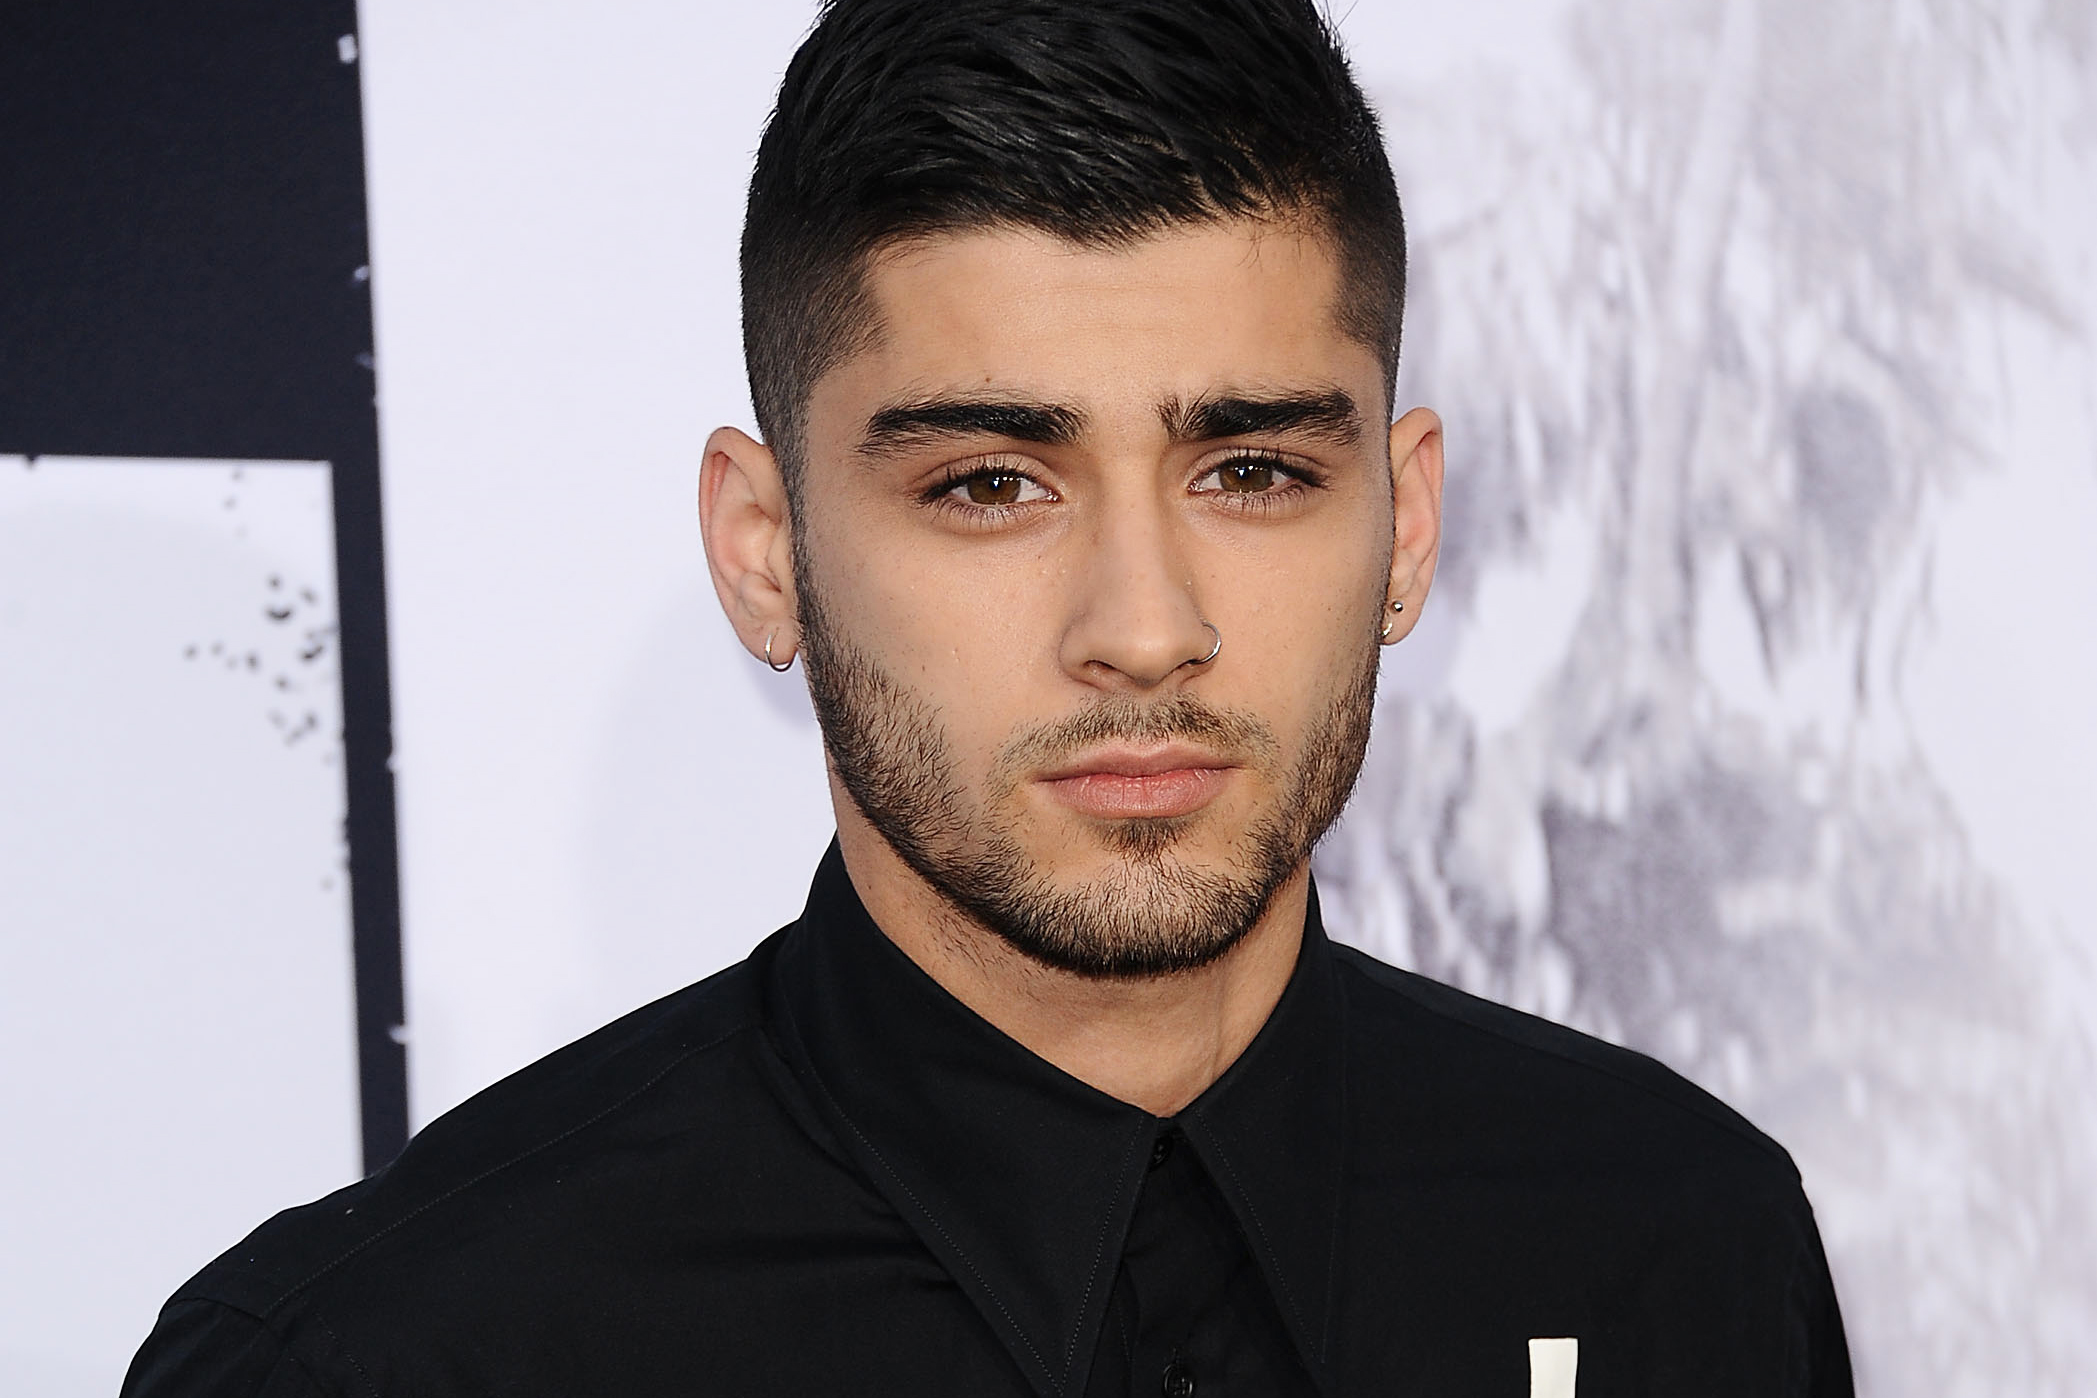 Zayn Malik Top 4 Hairstyles High Styley